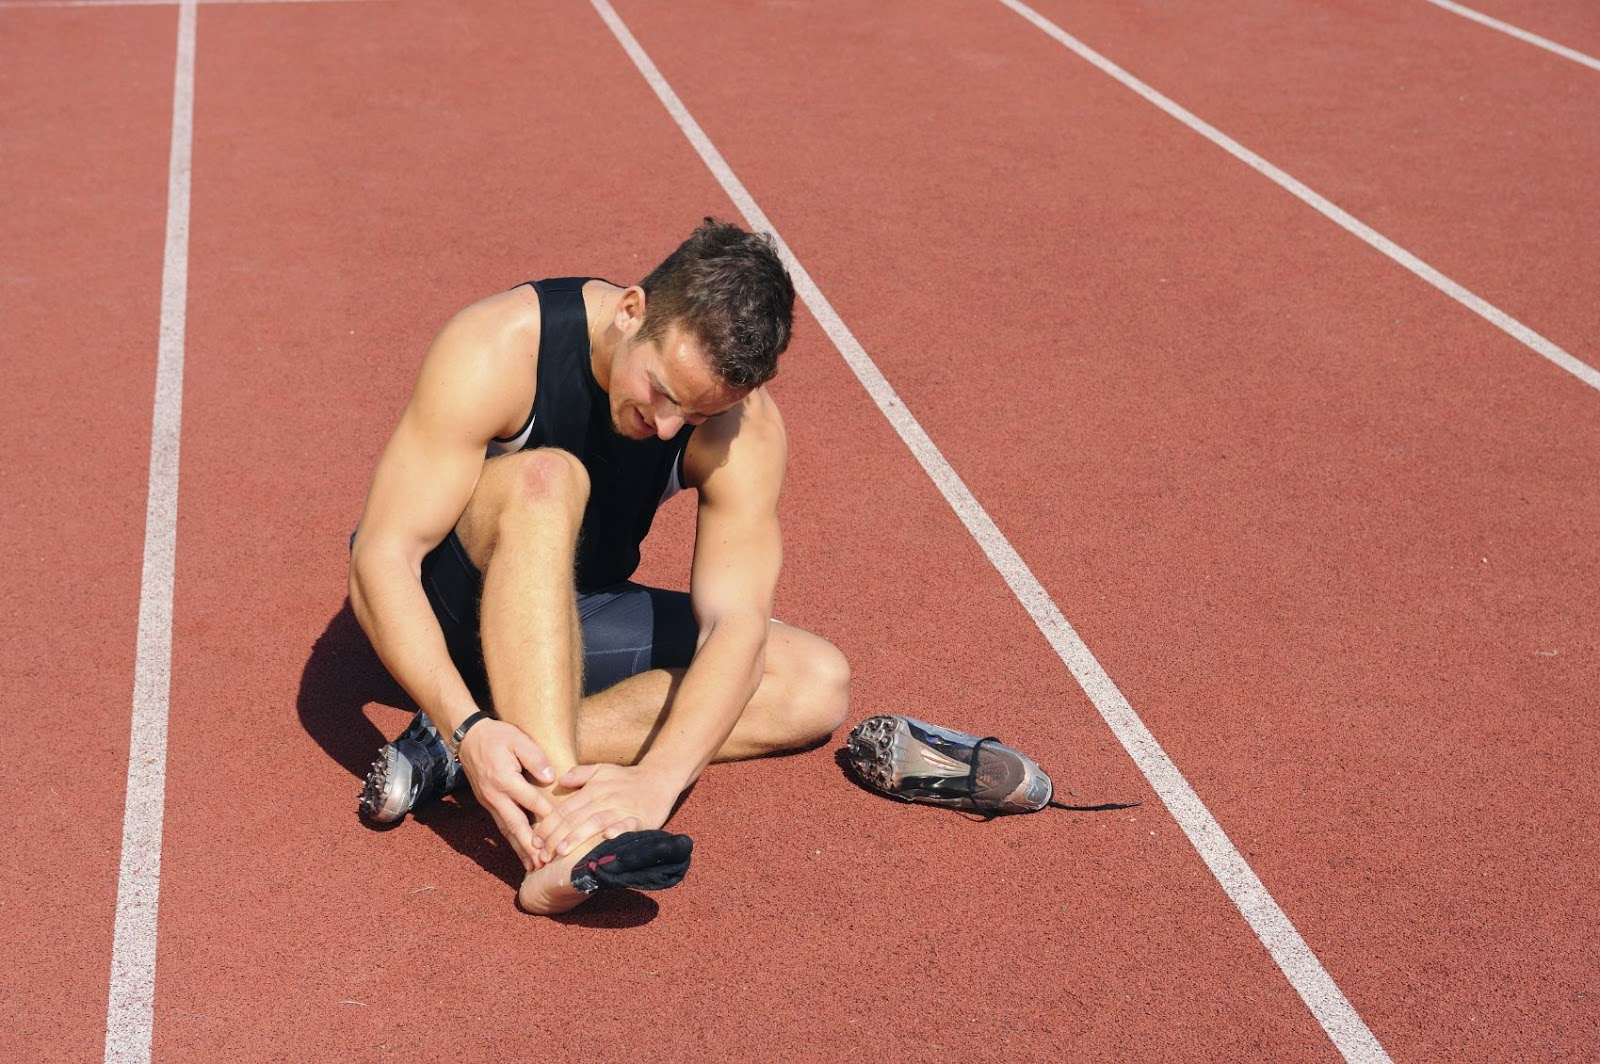 how to deal with sports injury